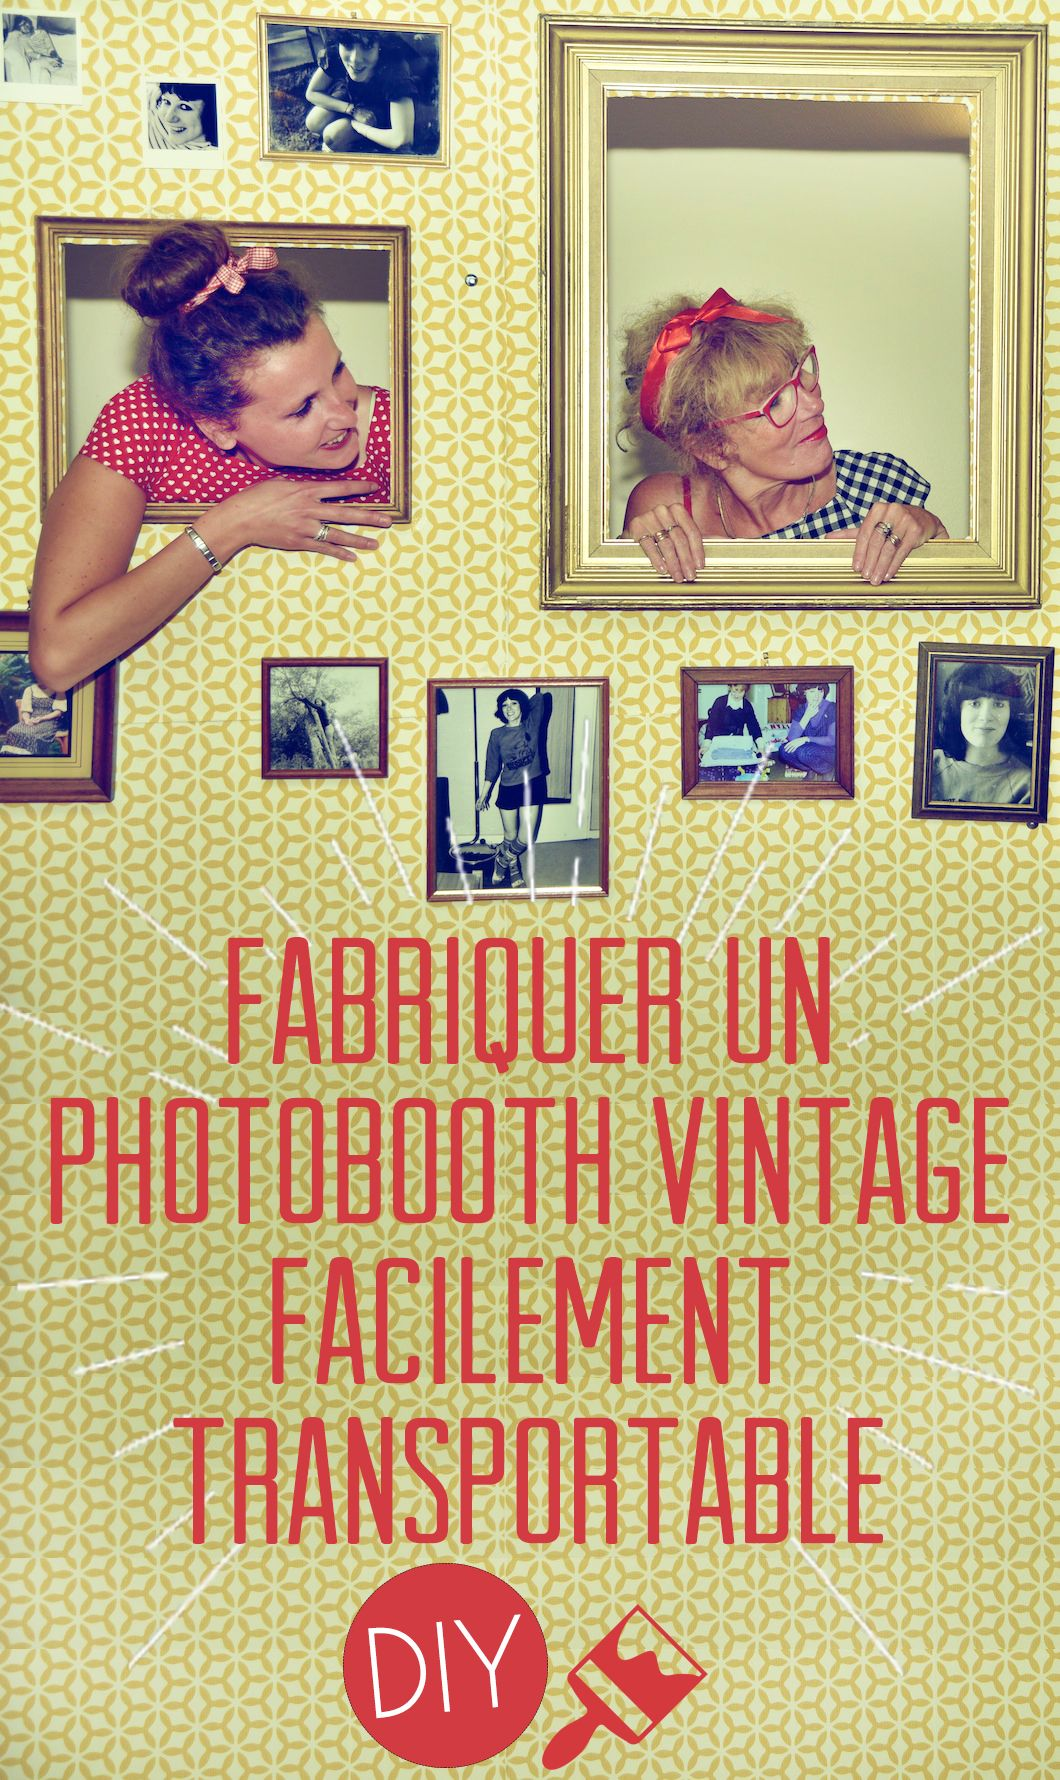 diy fabriquer un photobooth vintage facilement transportable anniversaires tuto et diy. Black Bedroom Furniture Sets. Home Design Ideas